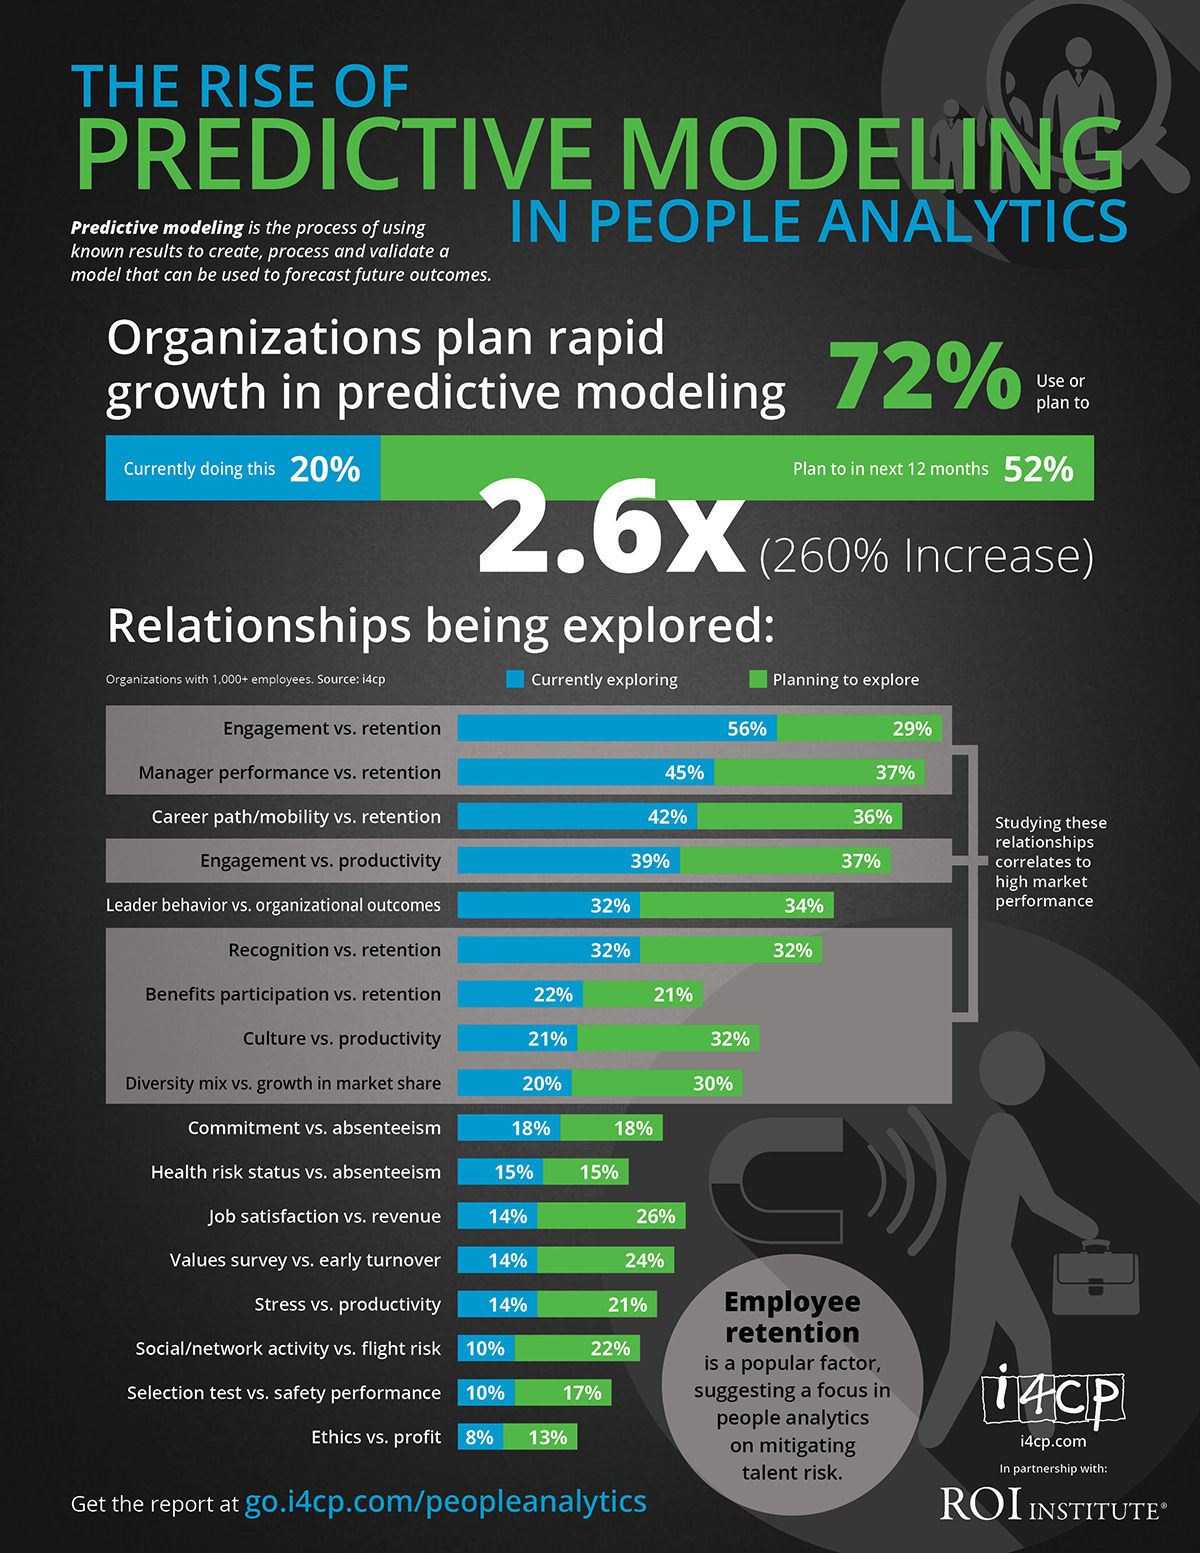 The Rise of Predictive Modeling in People Analytics